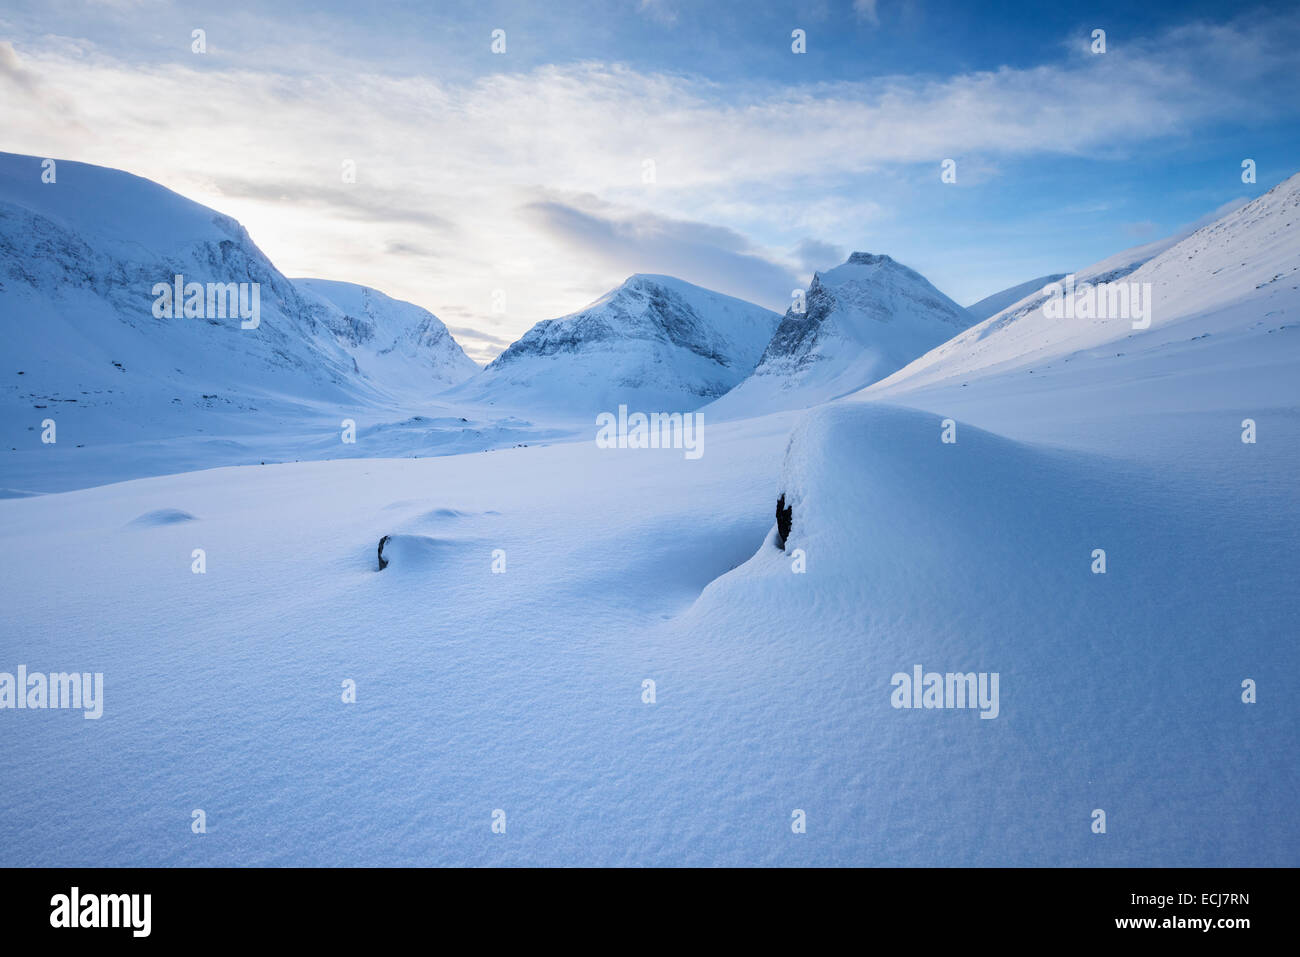 Winter mountain landscape of Ladtjovagge valley viewed from near Kebnekaise Fjällstation, Lapland, Sweden - Stock Image